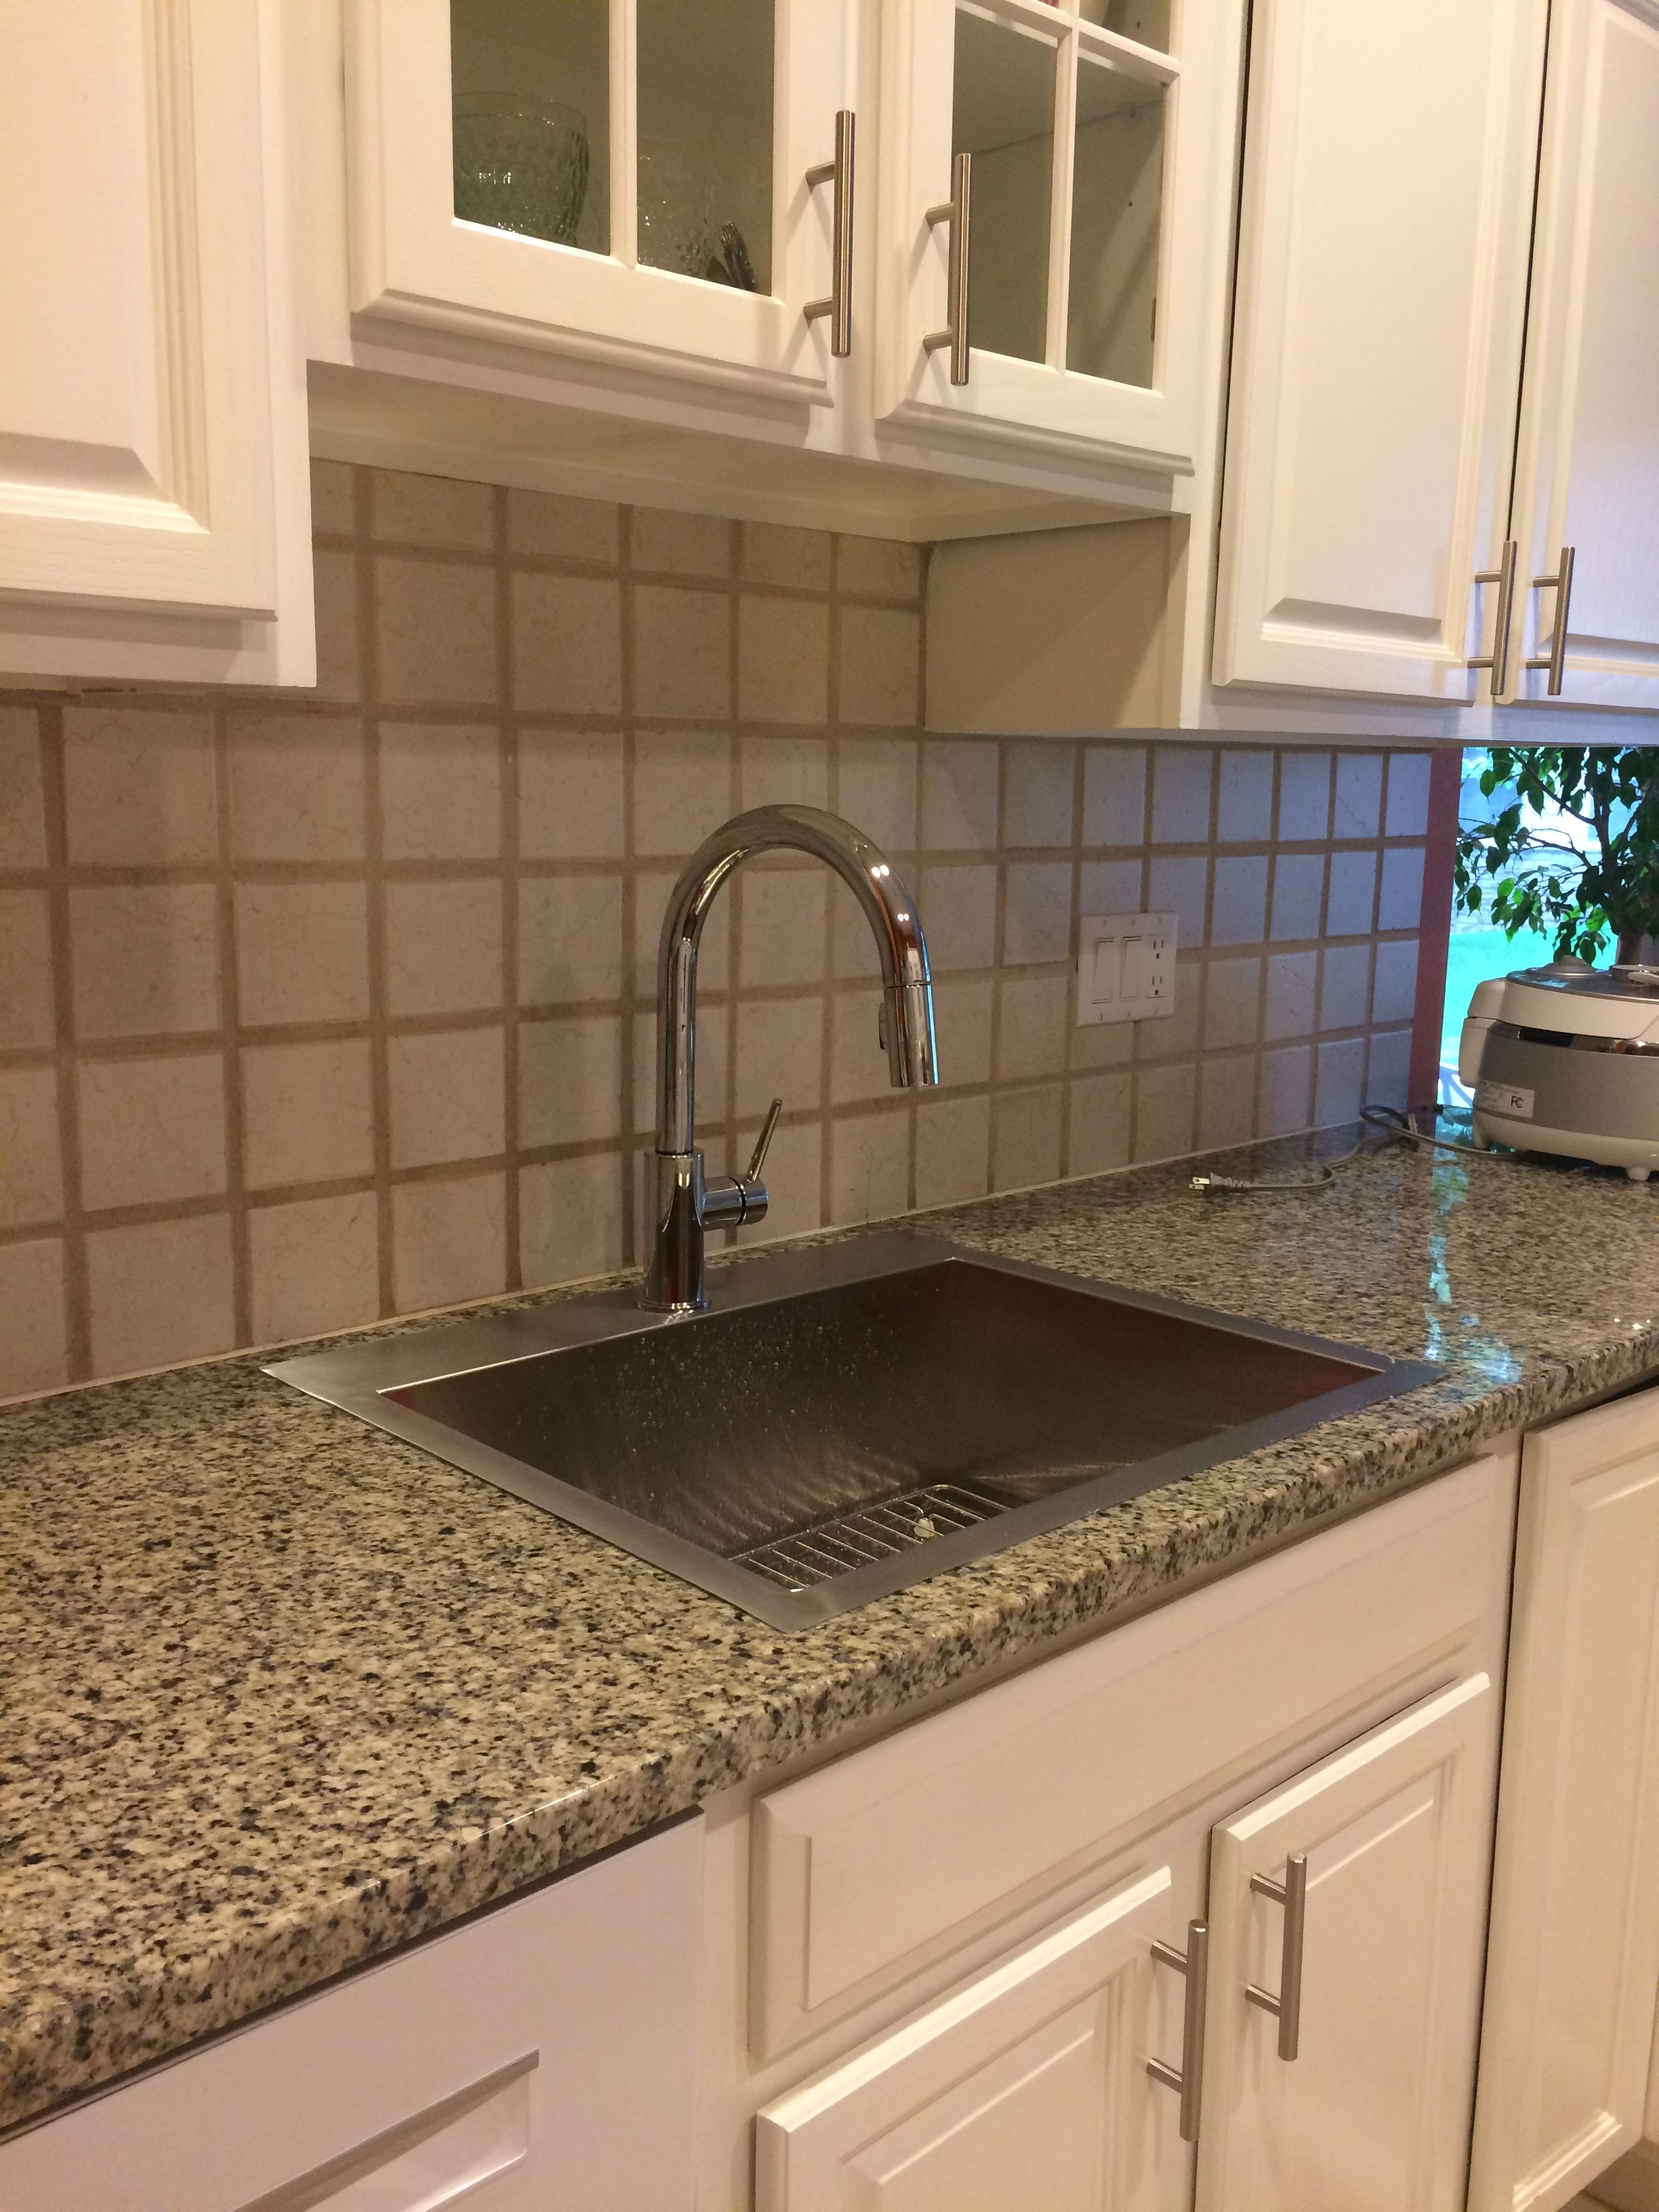 K 3822 Sink Drop In Overmount Kitchen Sink And Faucet Update